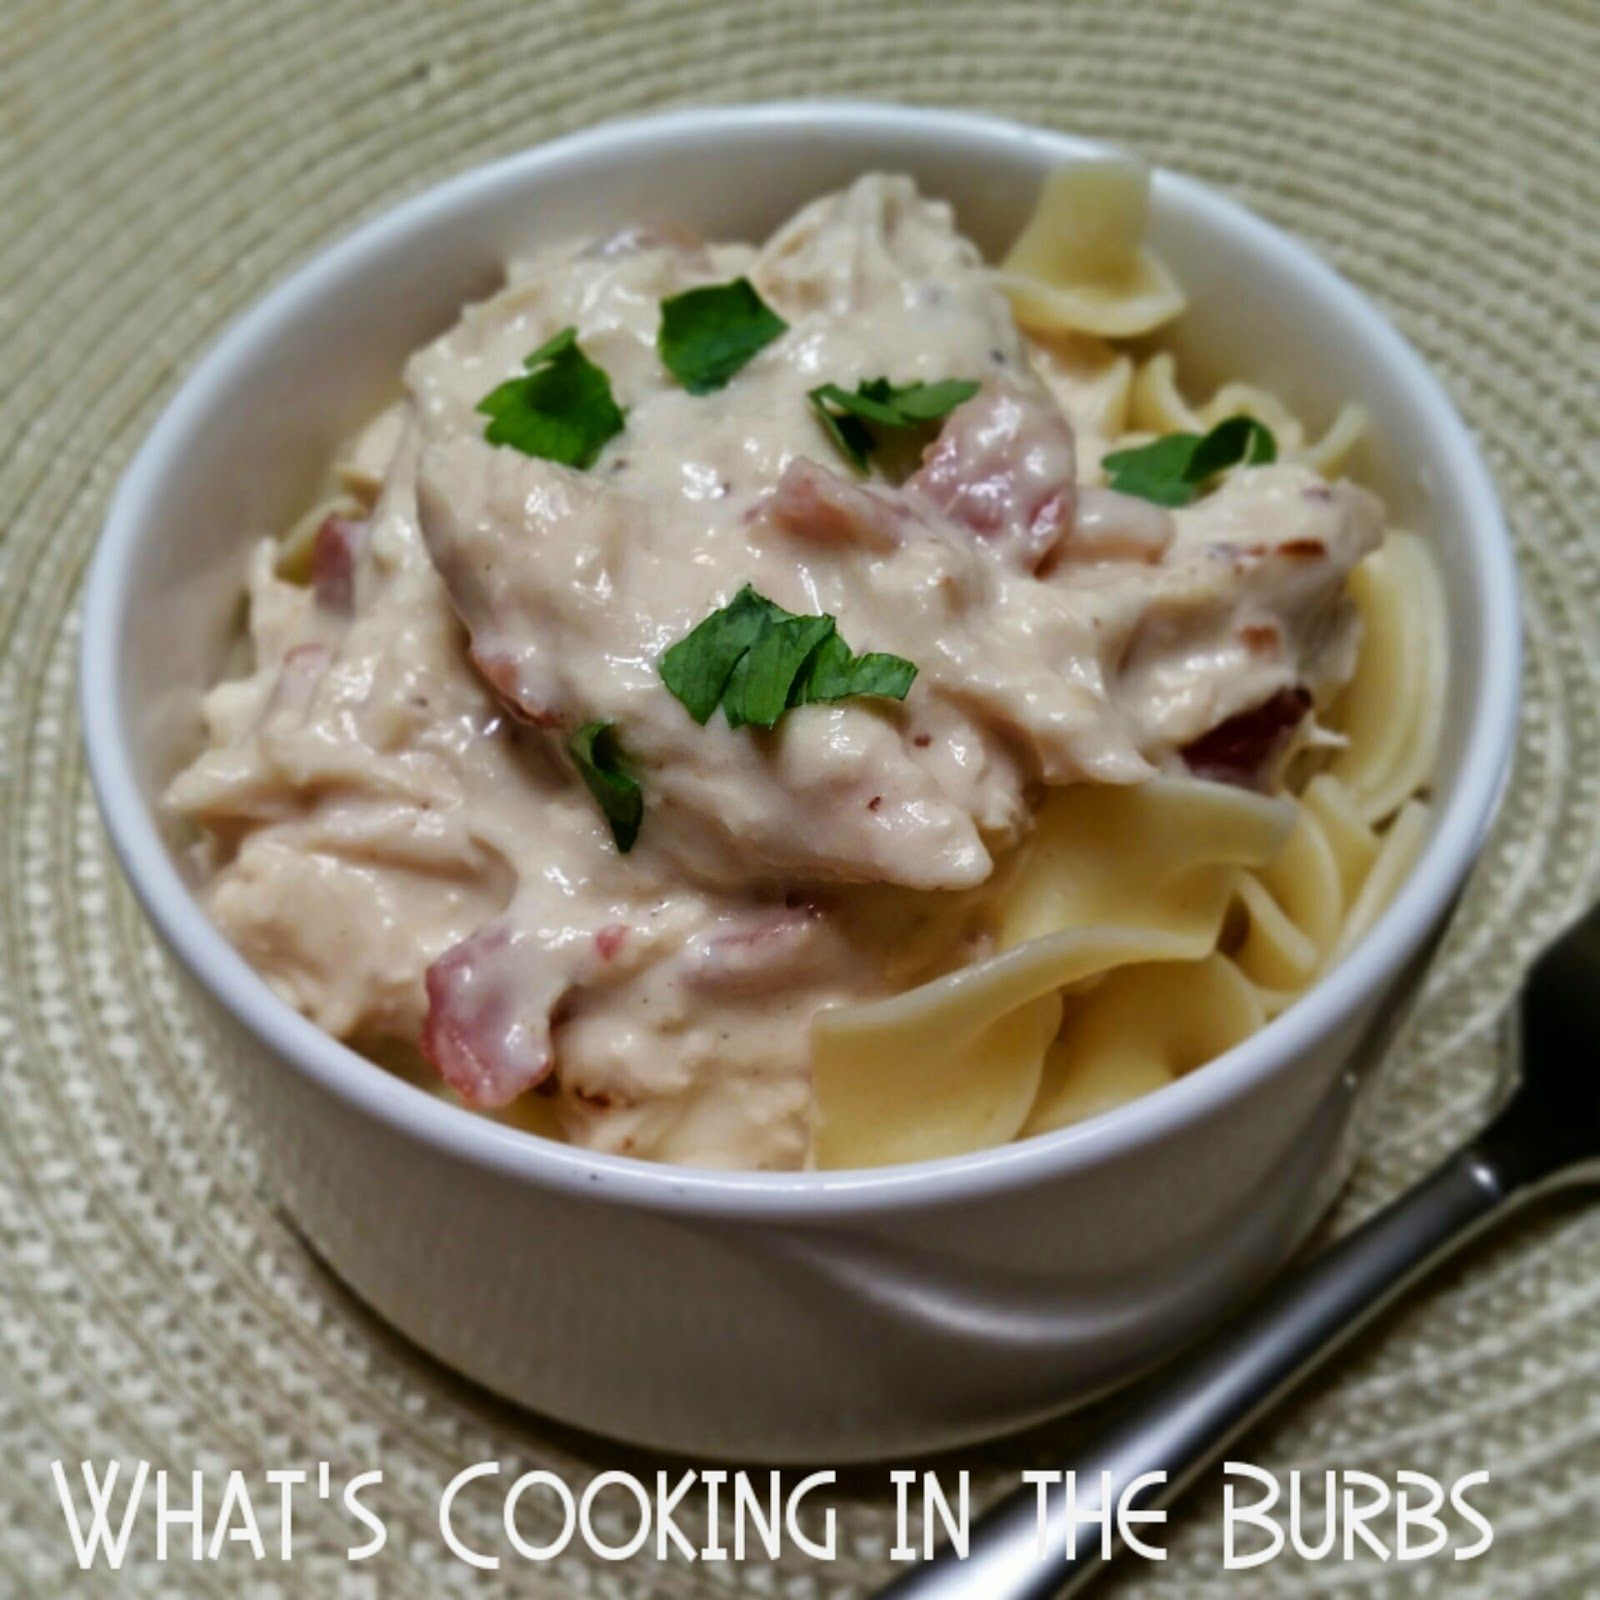 Sour Cream and Bacon Crock Pot Chicken - 6 points +